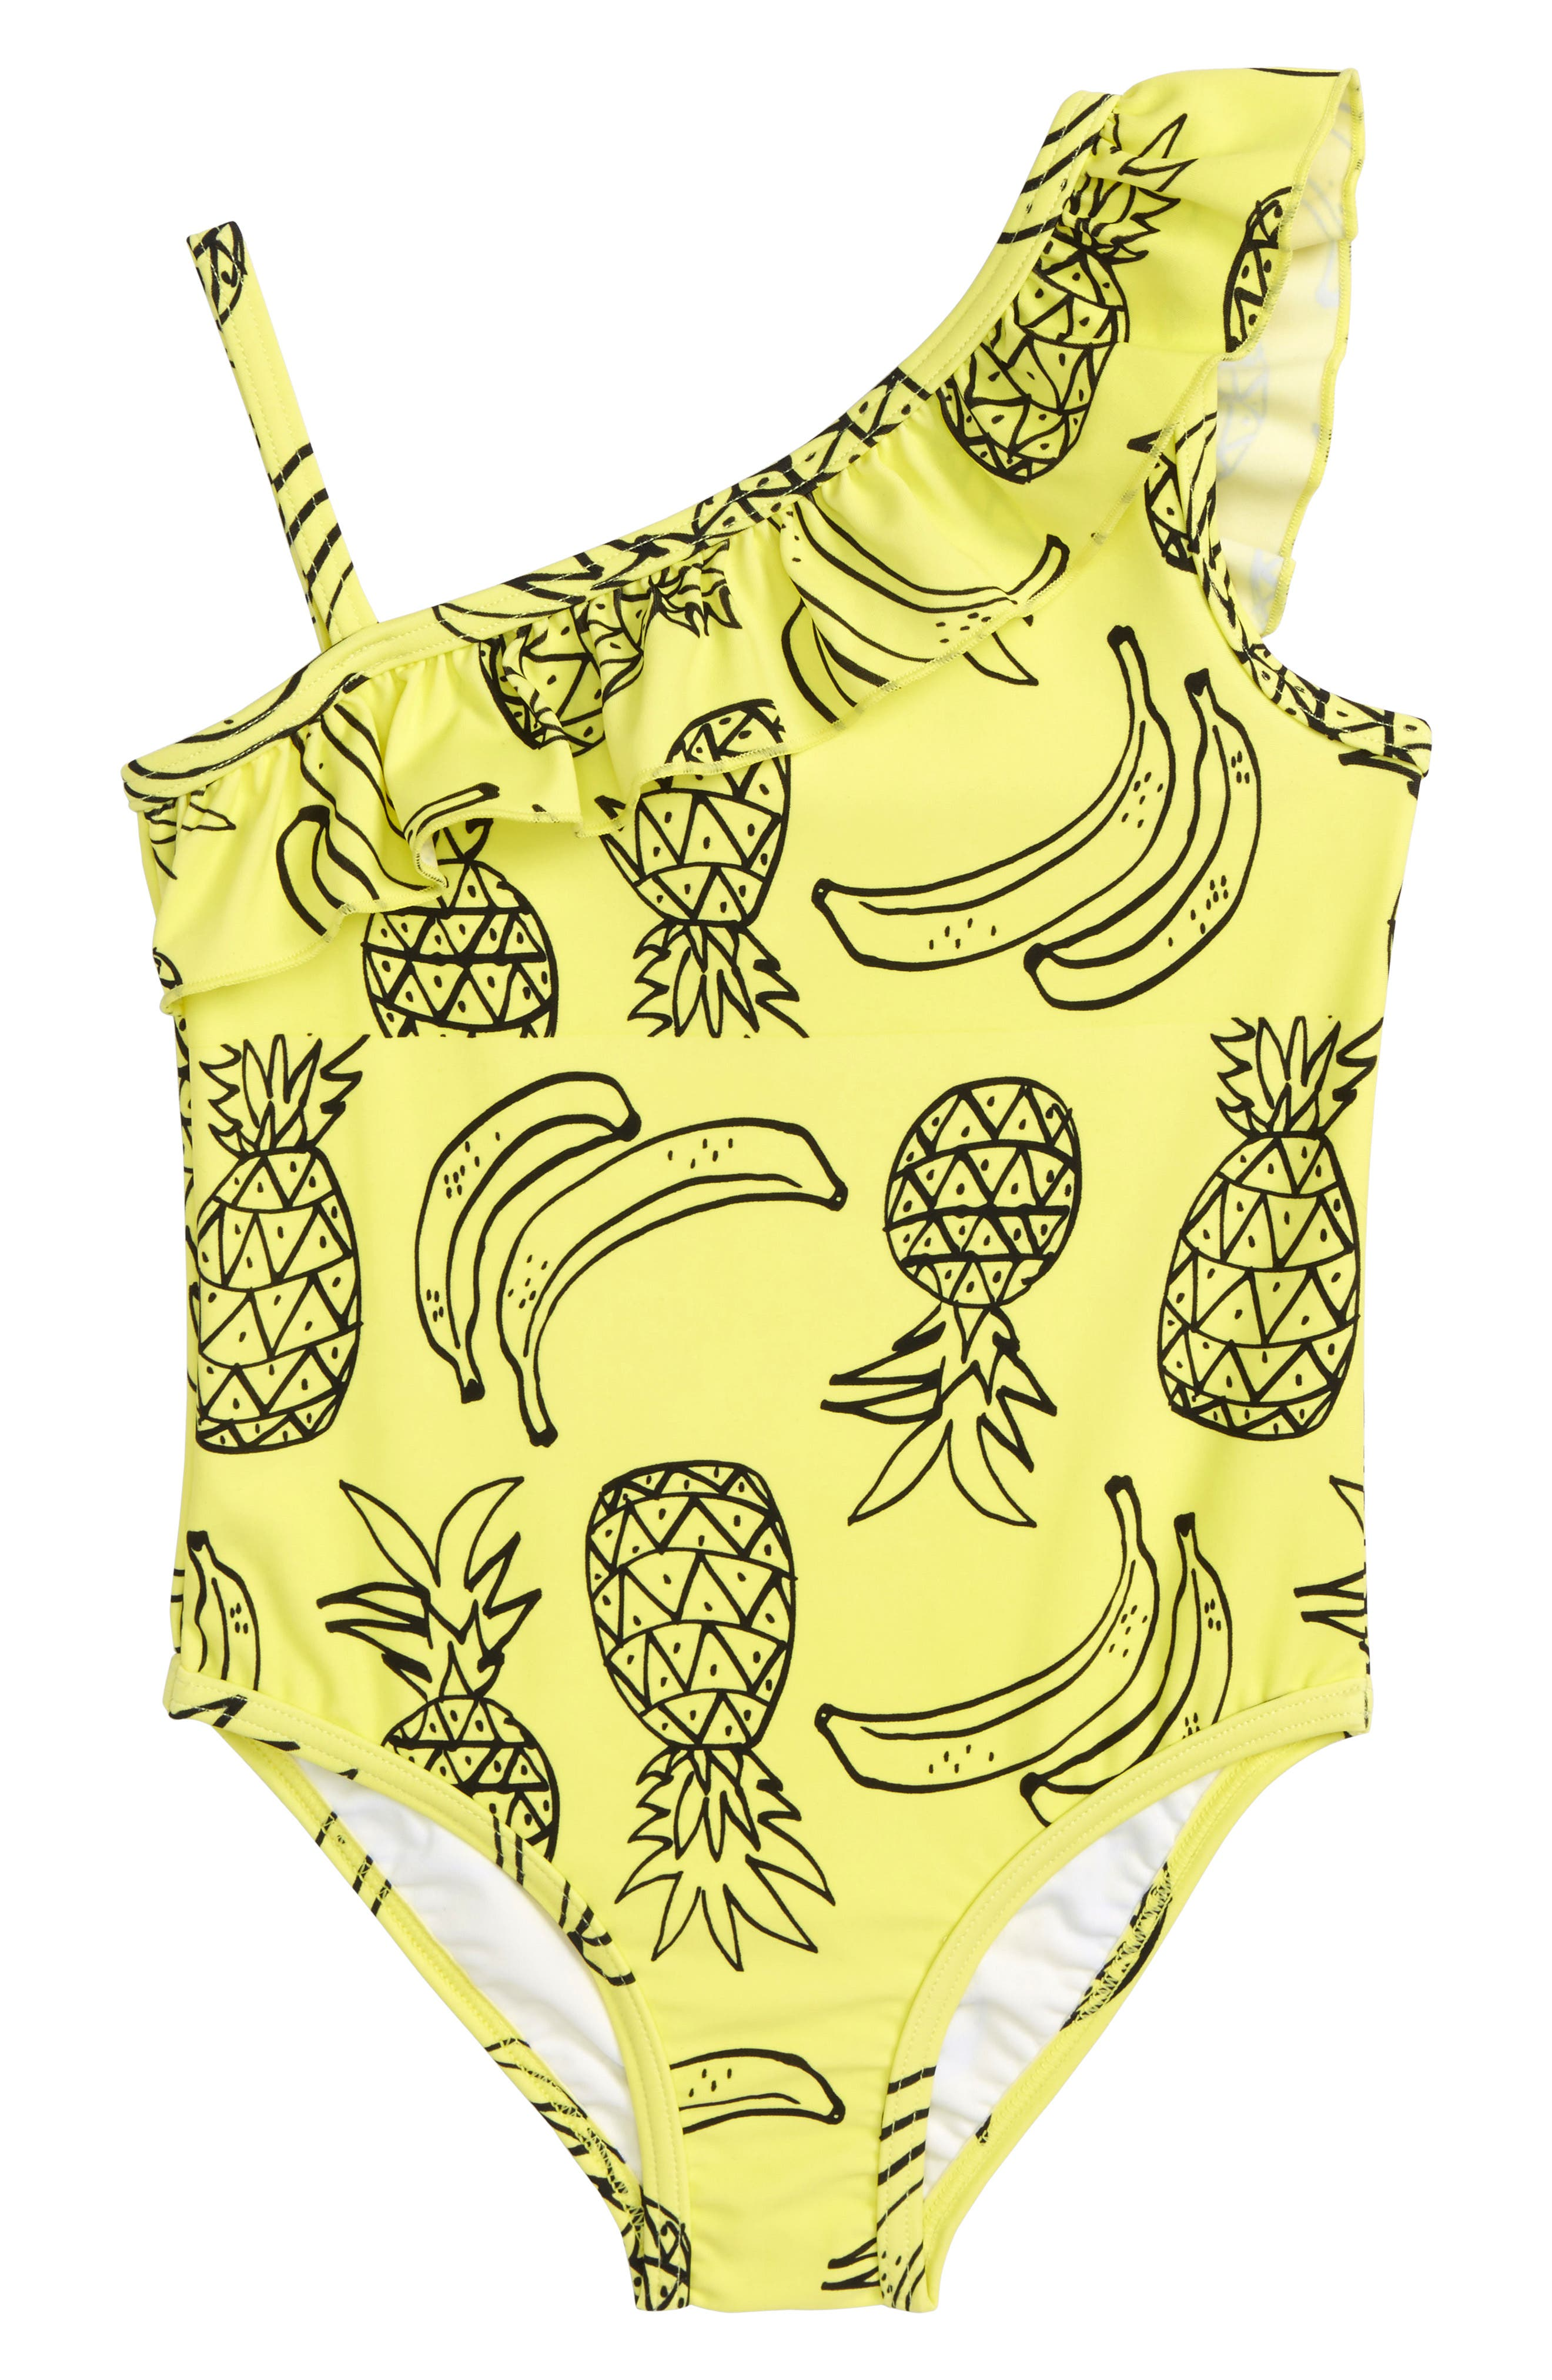 Pineapple Ruffle One-Piece Swimsuit,                             Main thumbnail 1, color,                             Yellow Light Tropical Fruits